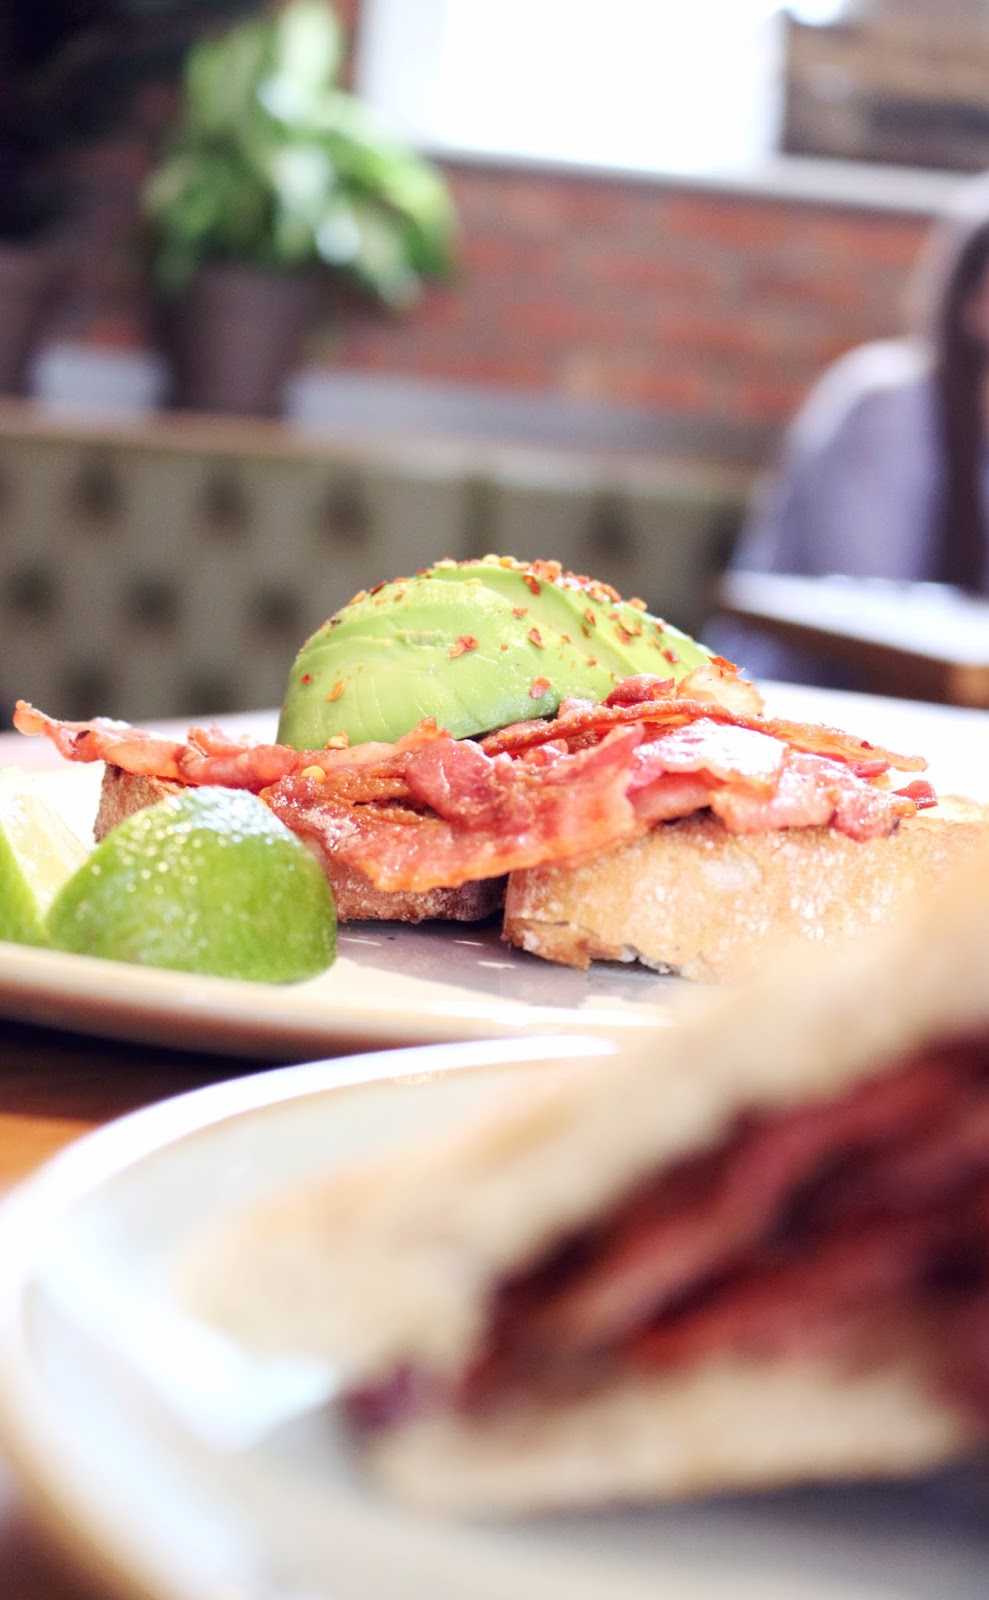 Avocado and Bacon on Toast at Olive and Bean, Newcastle.